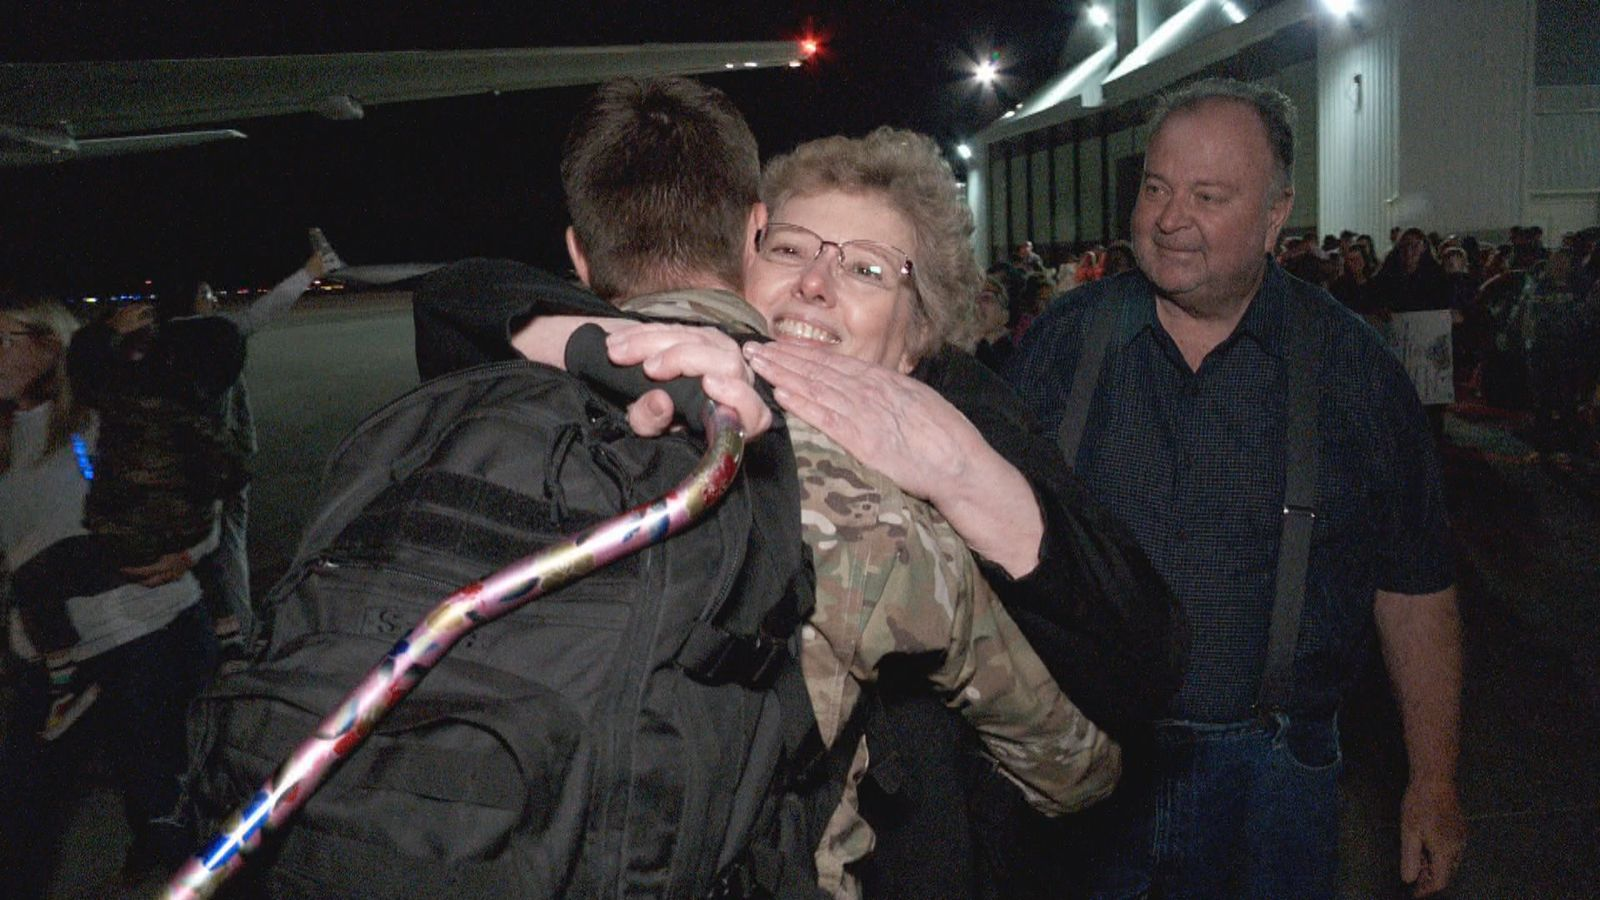 <p>Just after midnight on Monday, more than 100 members of the Utah Air National Guard returned home. (Photo: KUTV)</p>